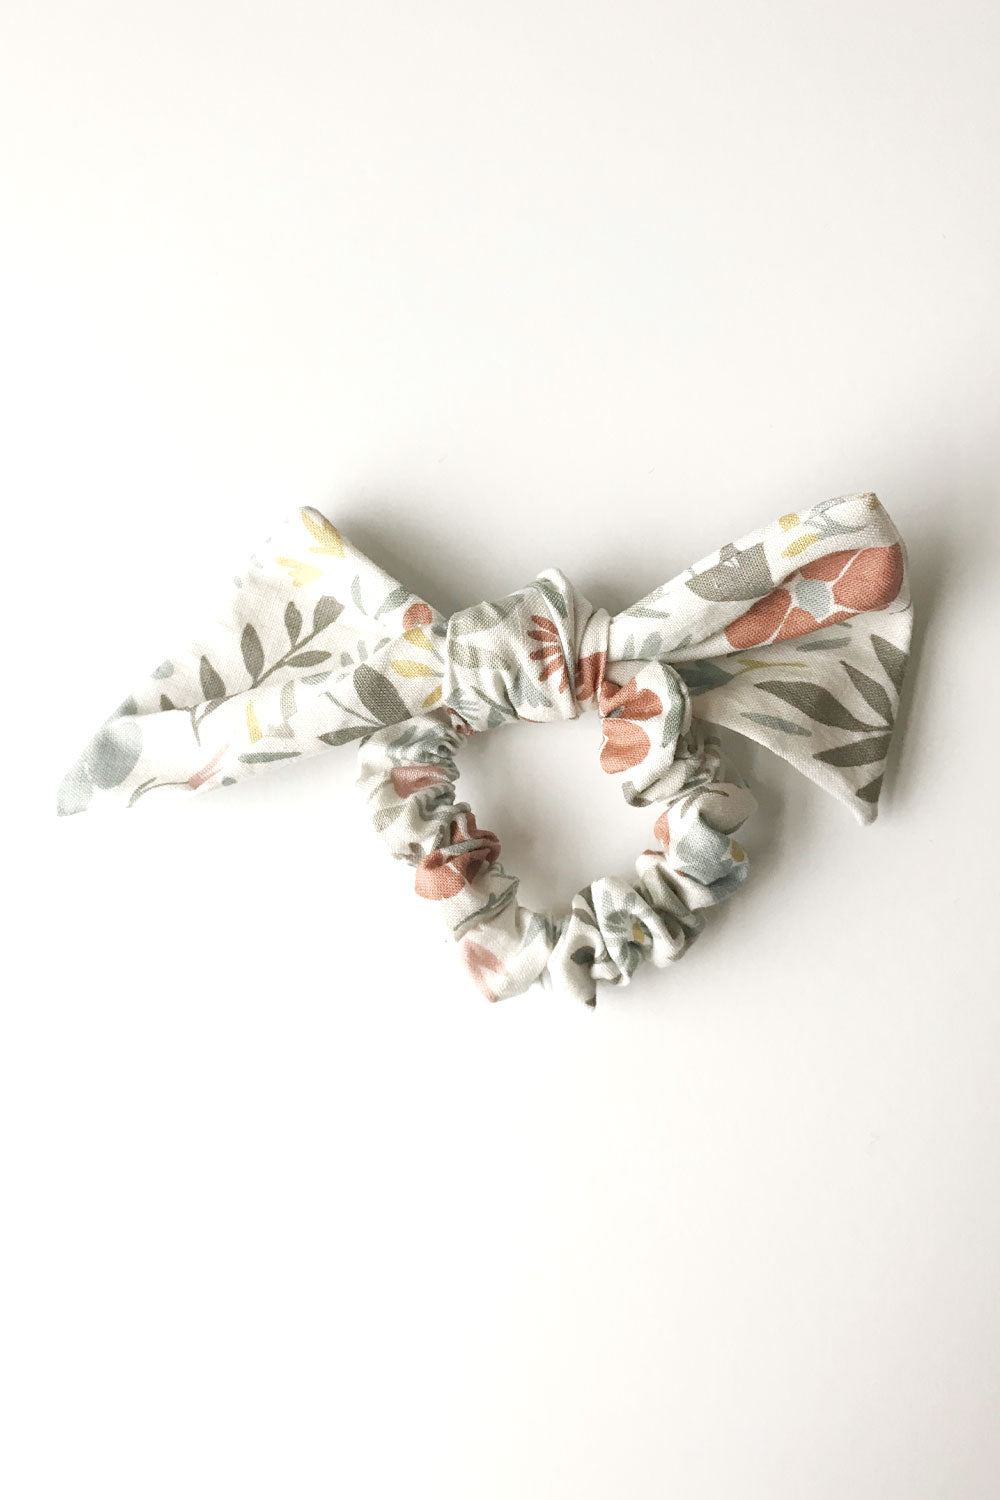 angelica bloom bow scrunchie - muted colored flowers on cream background